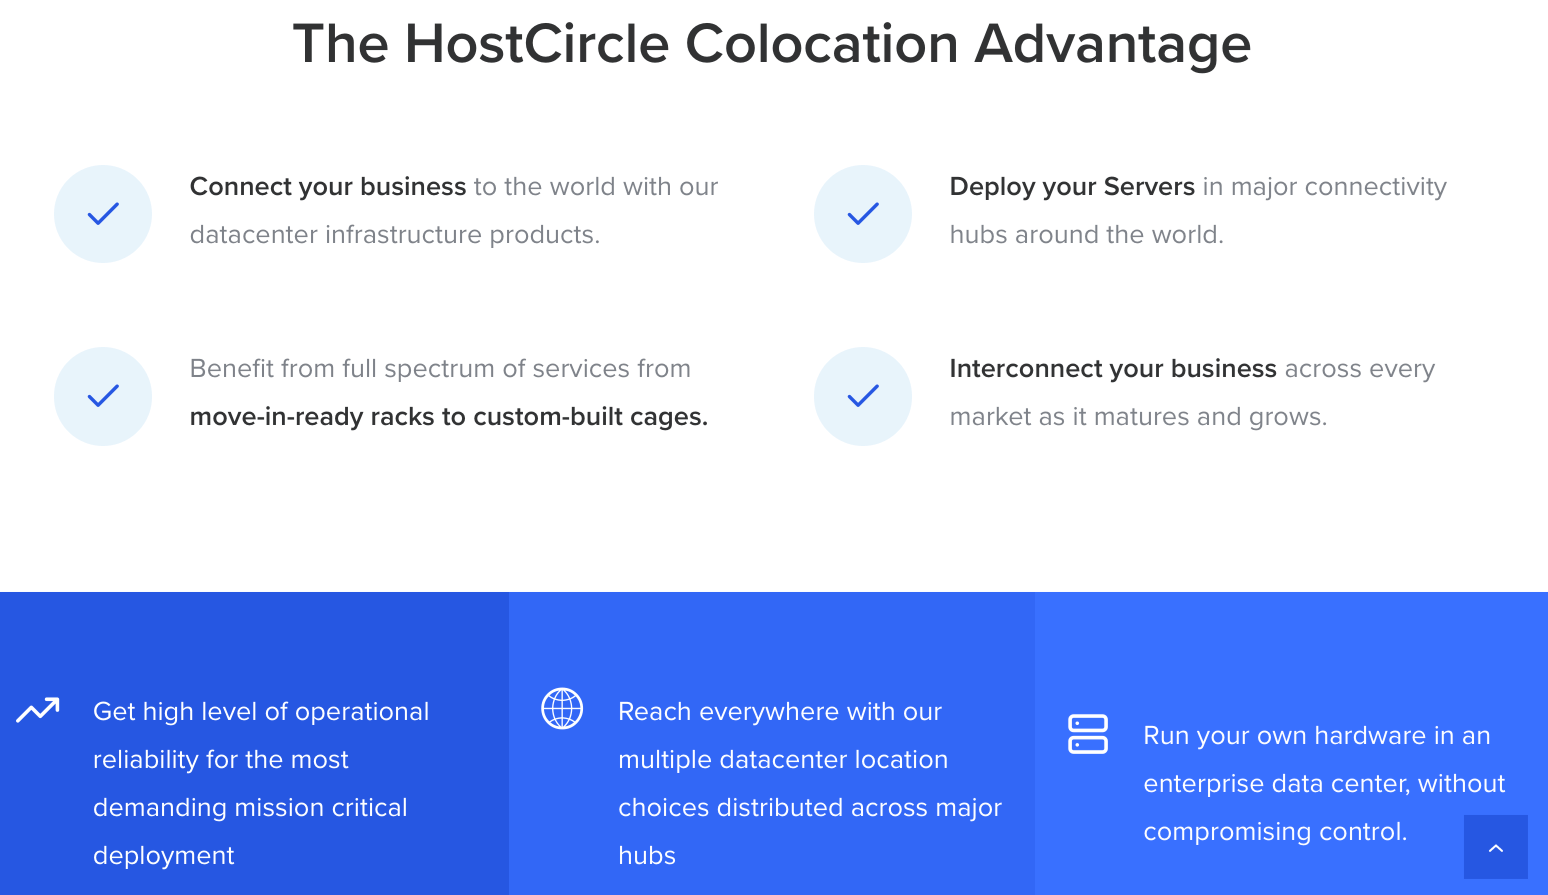 hostcircle features